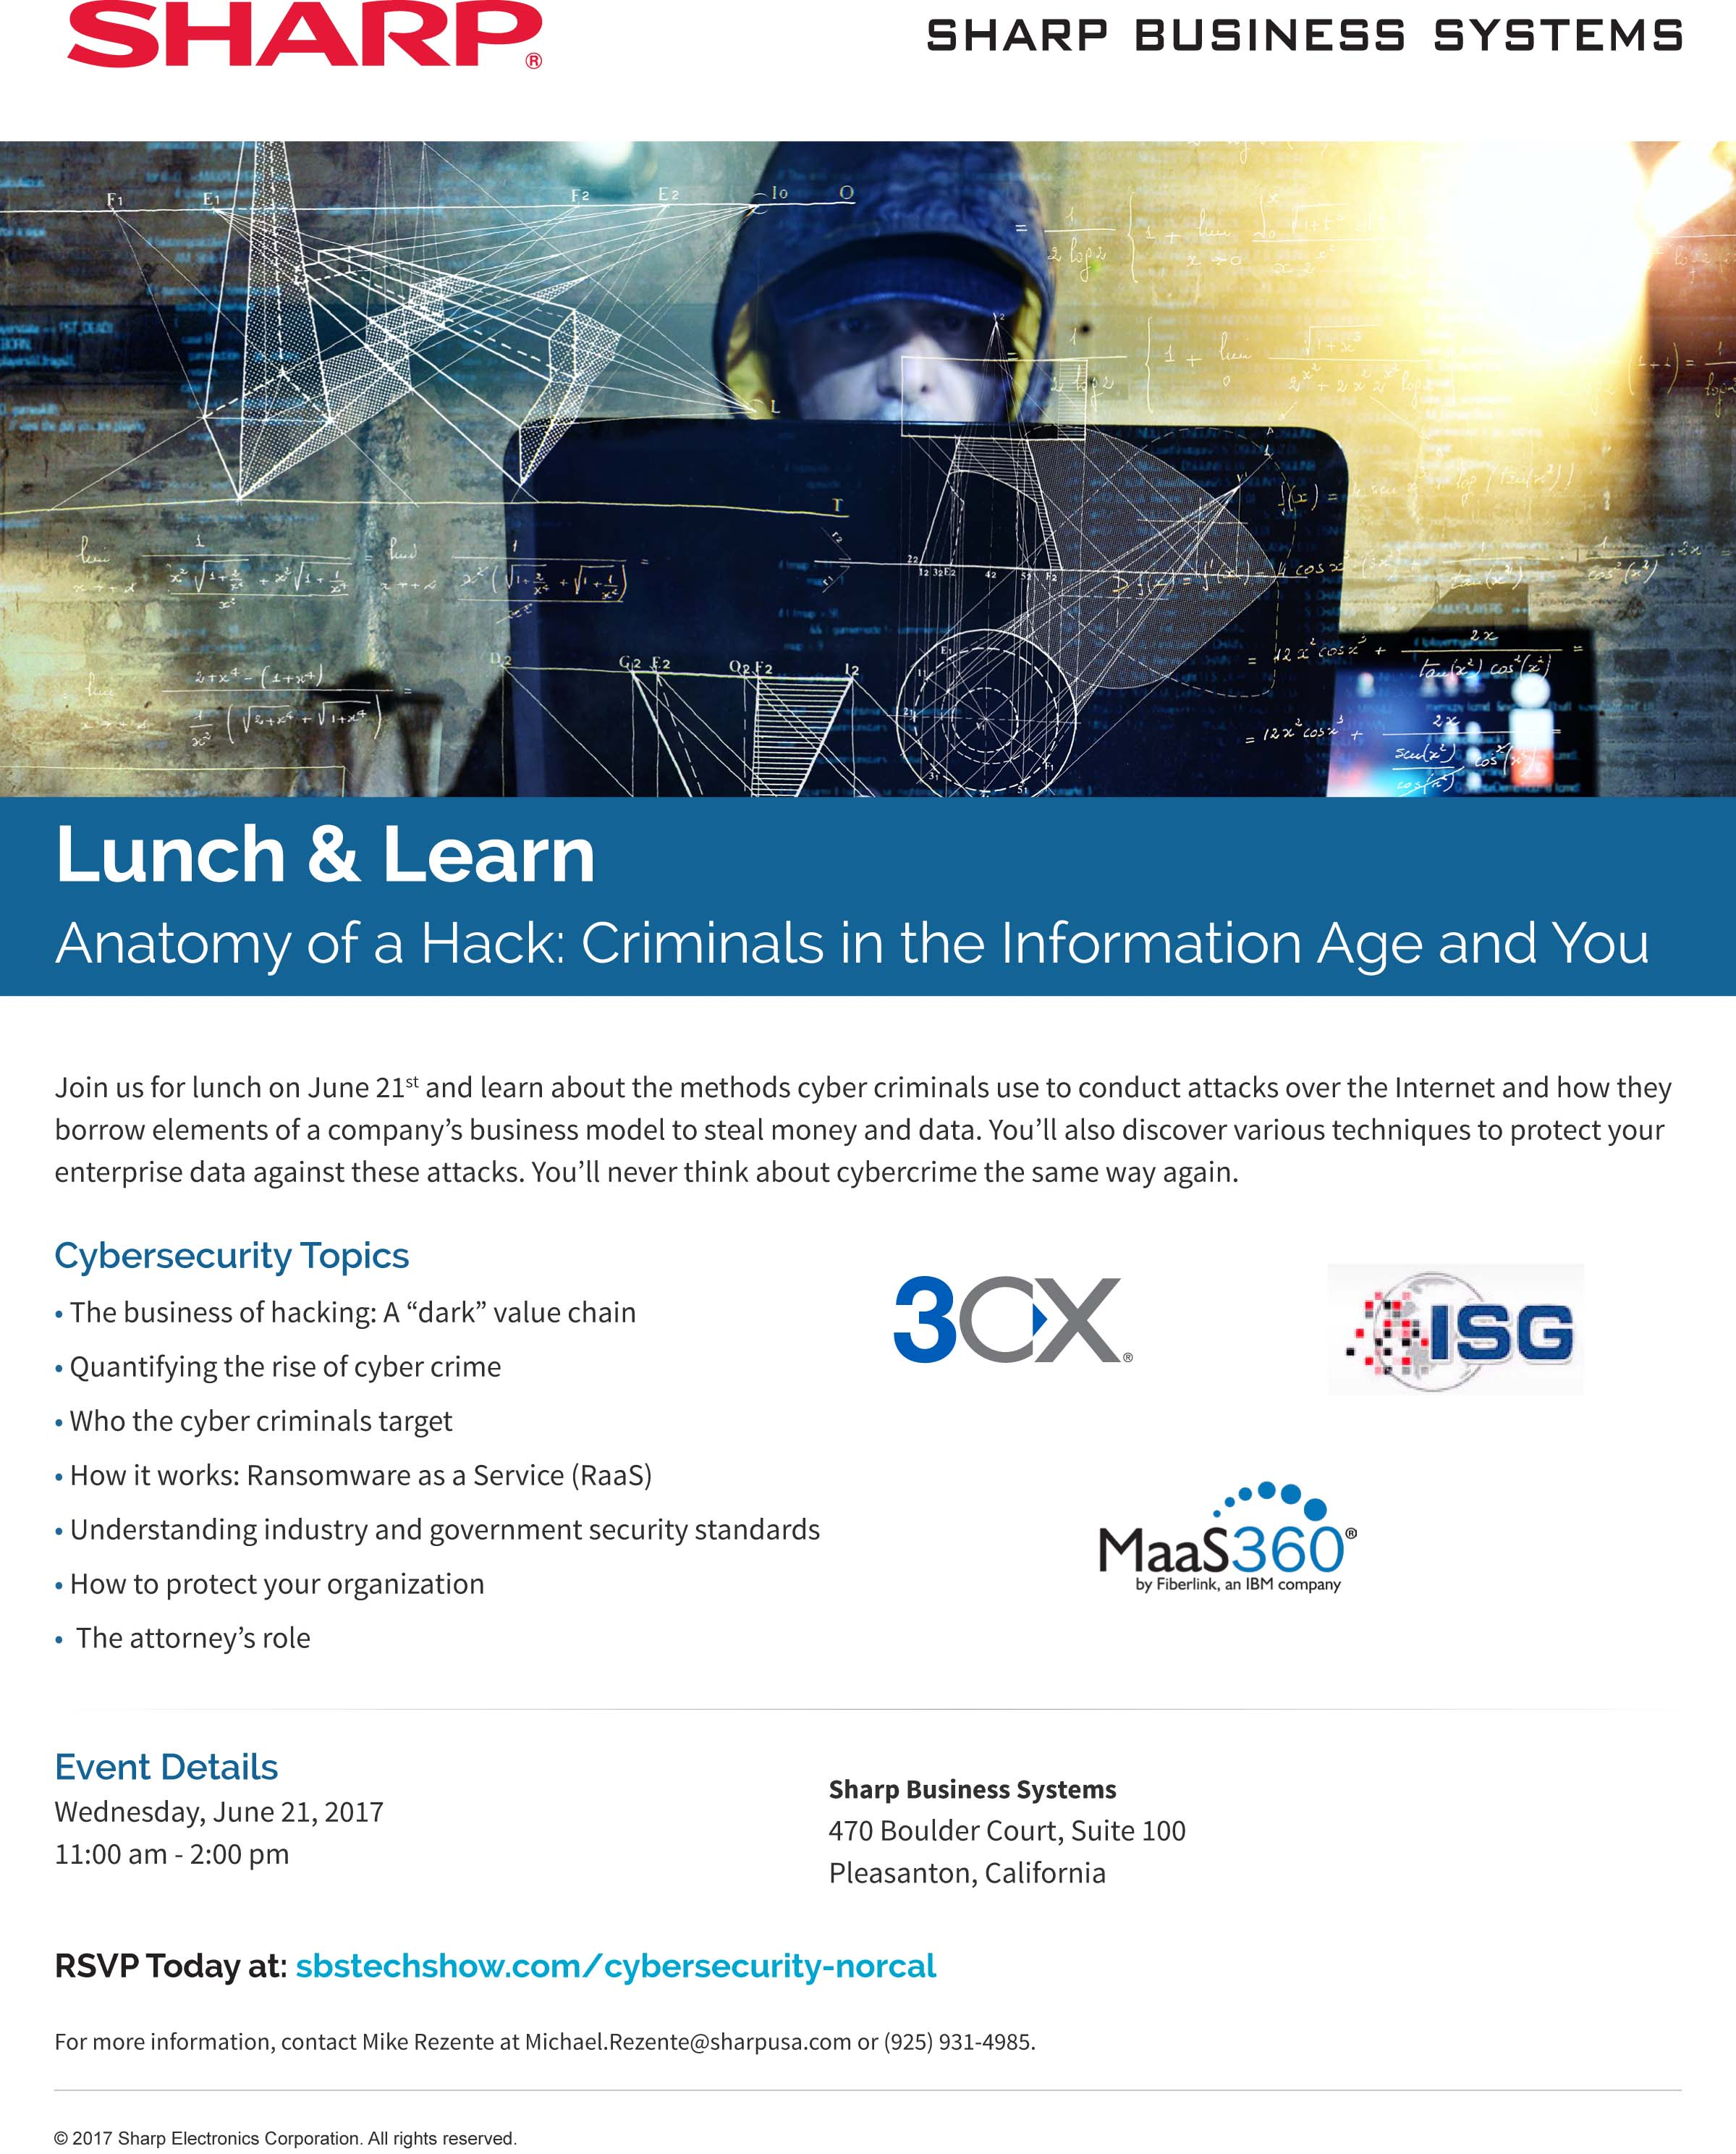 Sharp-Business-Systems-Cybersecurity-Lunch-Learn